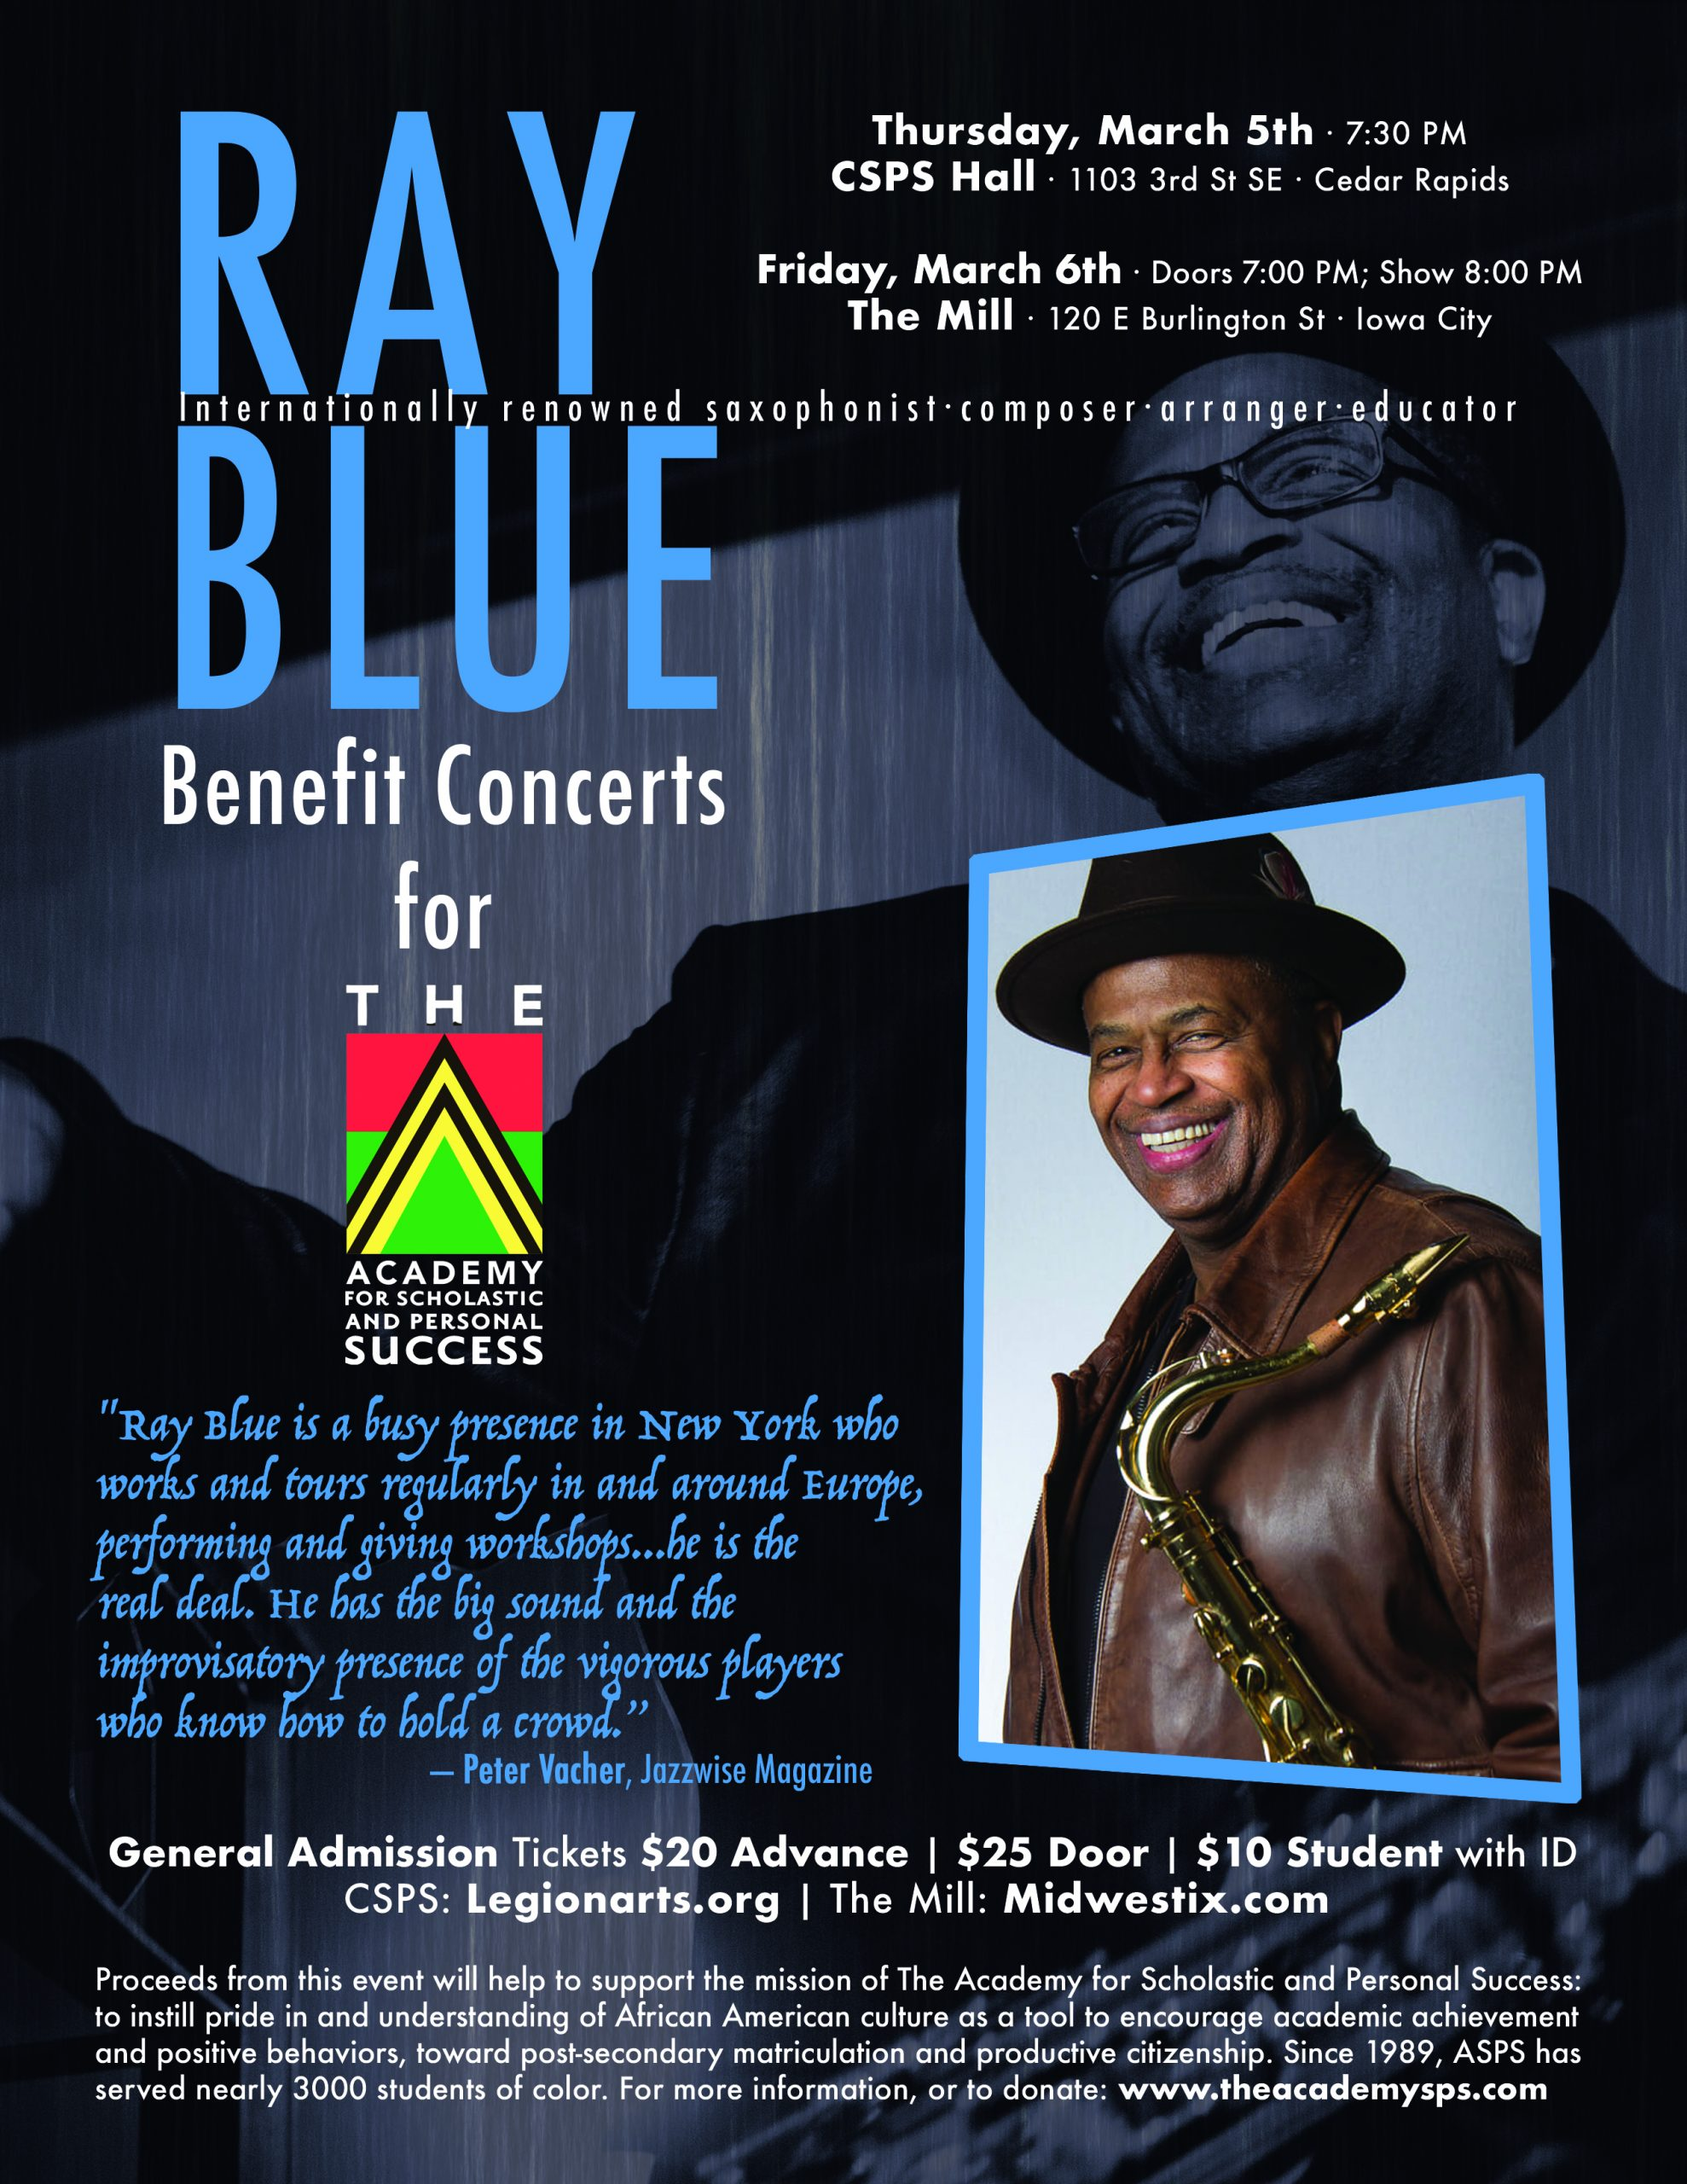 Academy for Scholastic and Personal Success Iowa Who We Are Ray Blue Fundraiser Concerts 2020